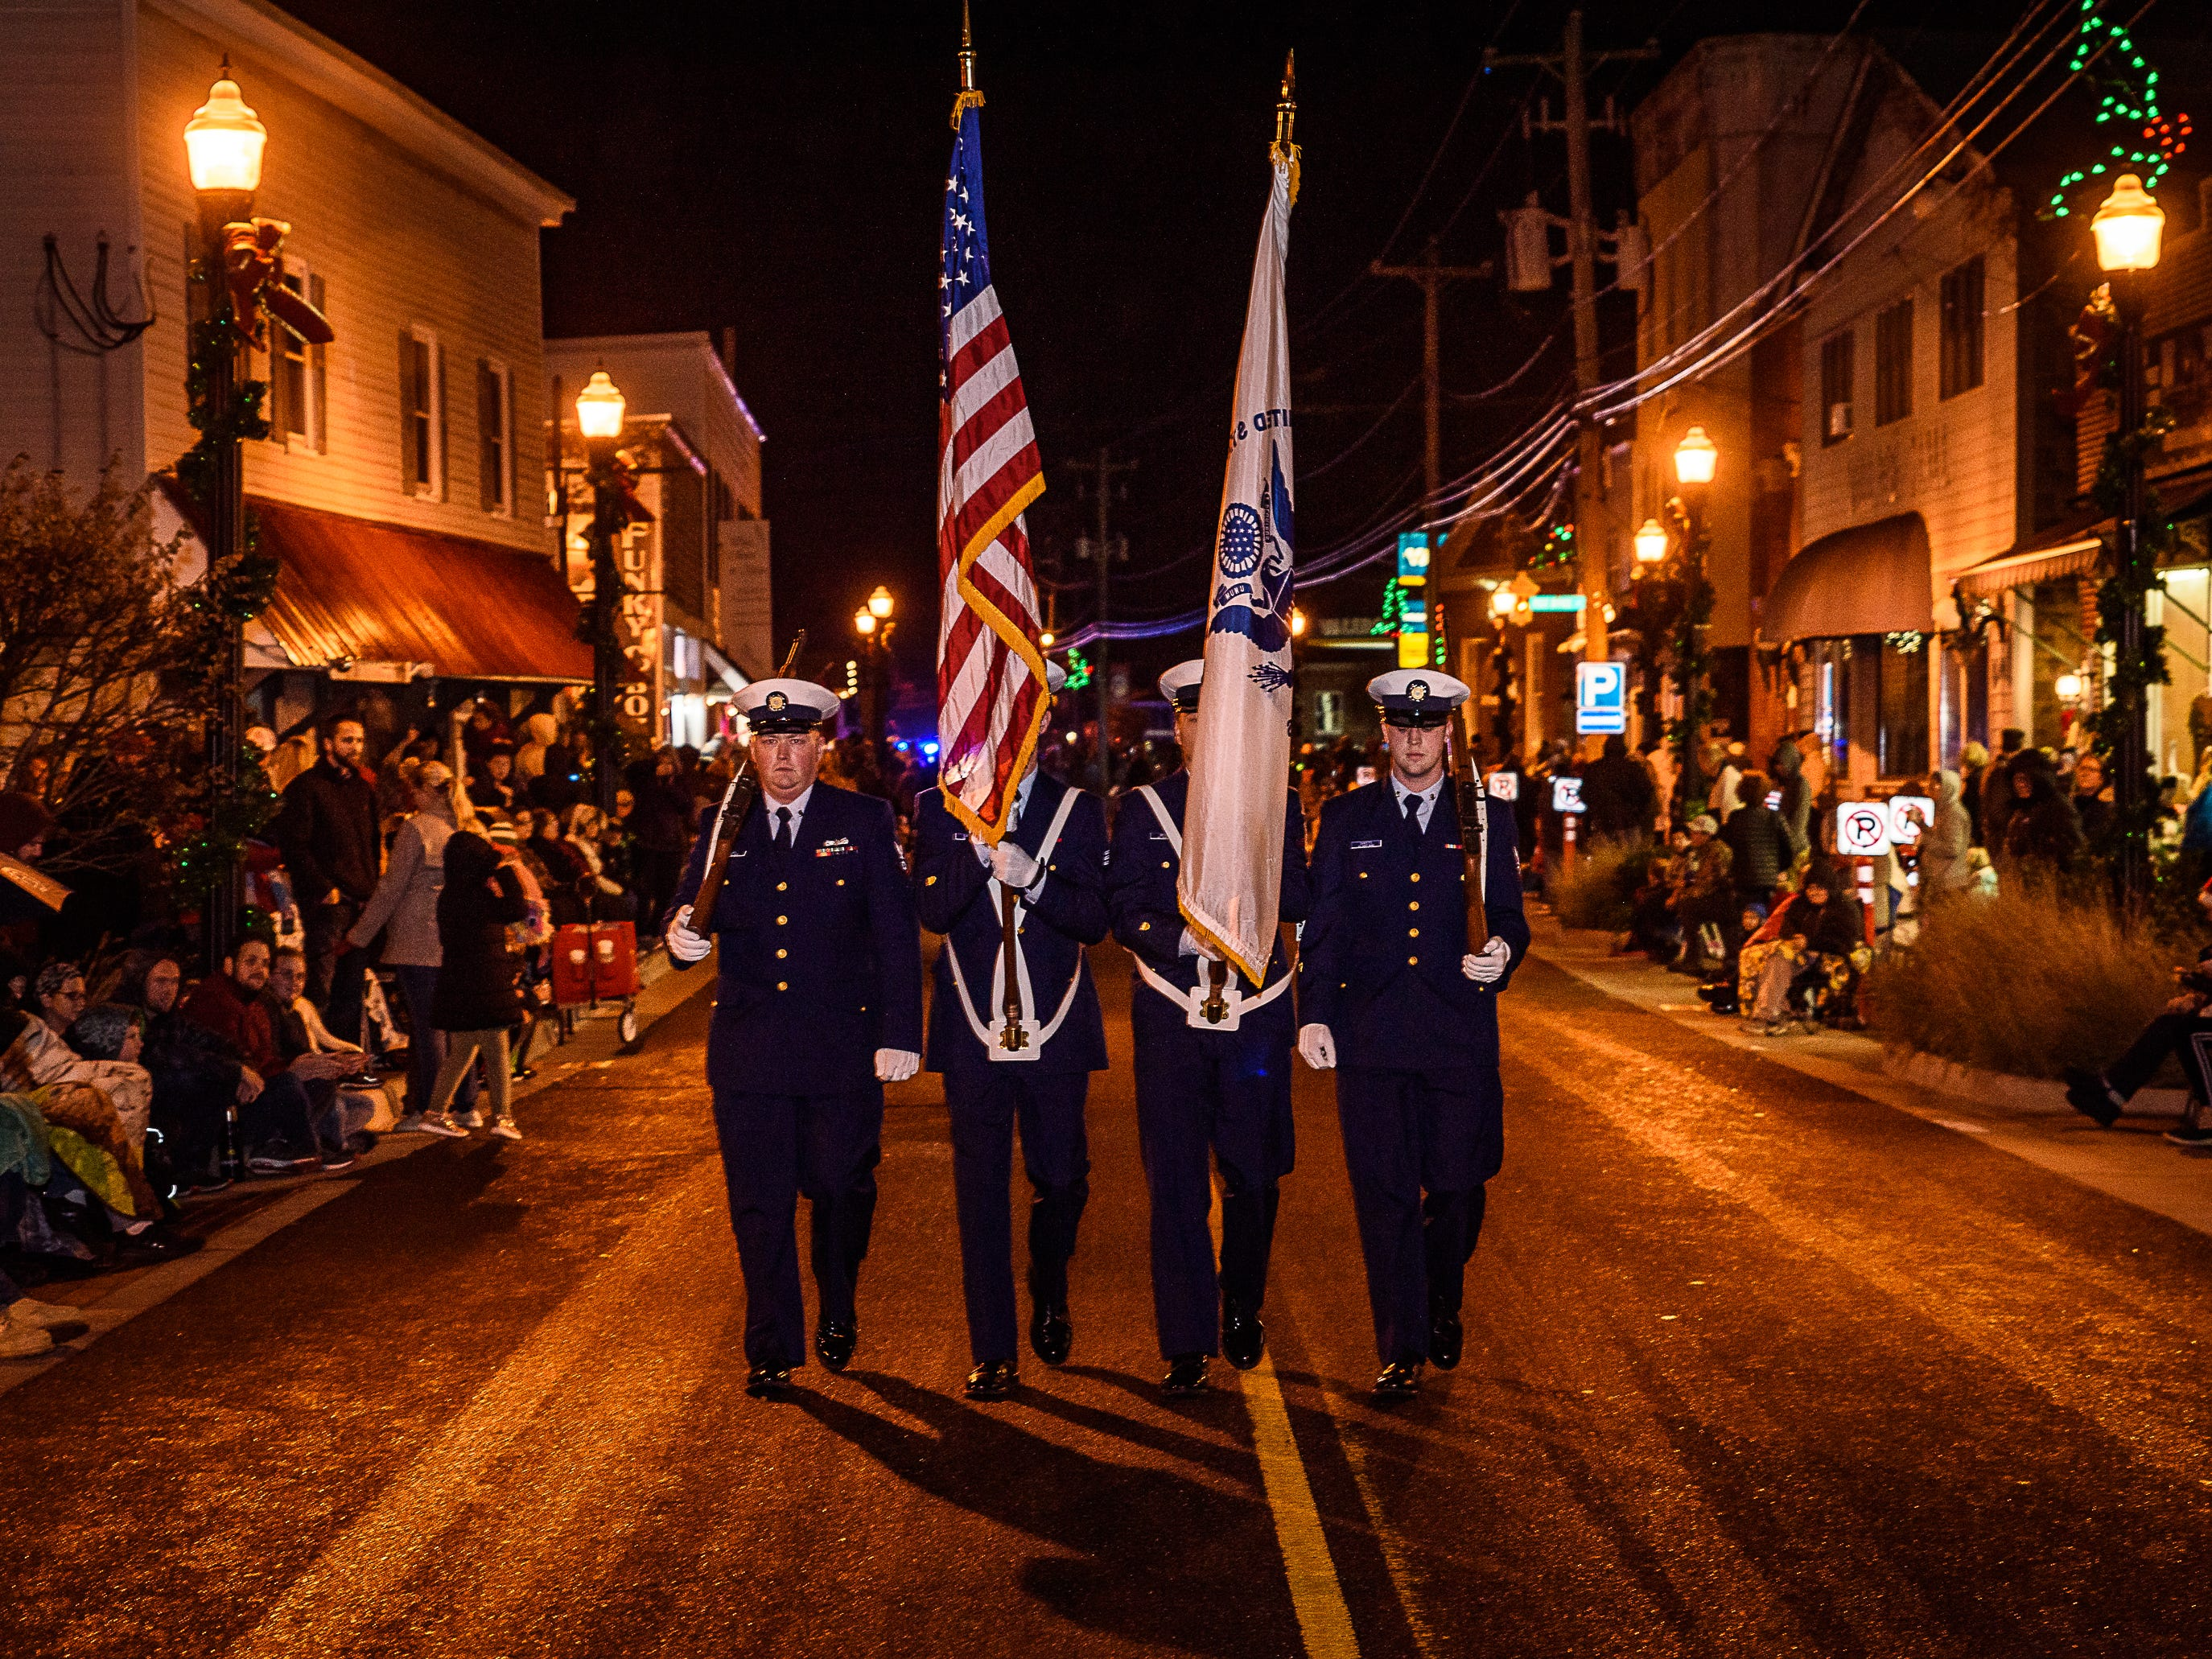 Members of the U.S. Coast Guard , Chincoteague station, carry the colors in the annual Christmas parade on Dec. 1.